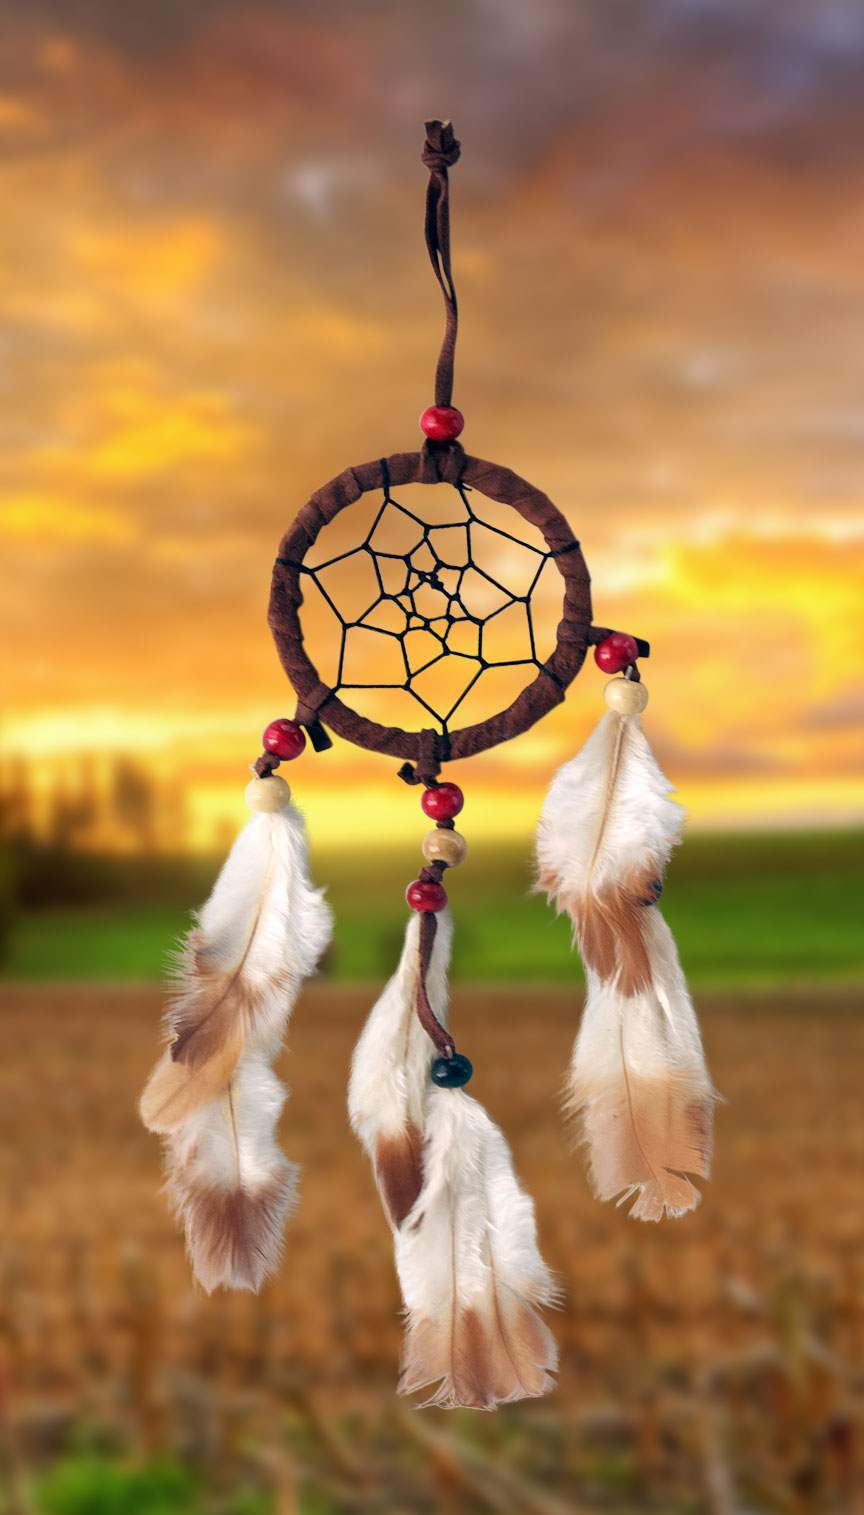 Shows an image of dreamcatcher owg007 on a scenic background